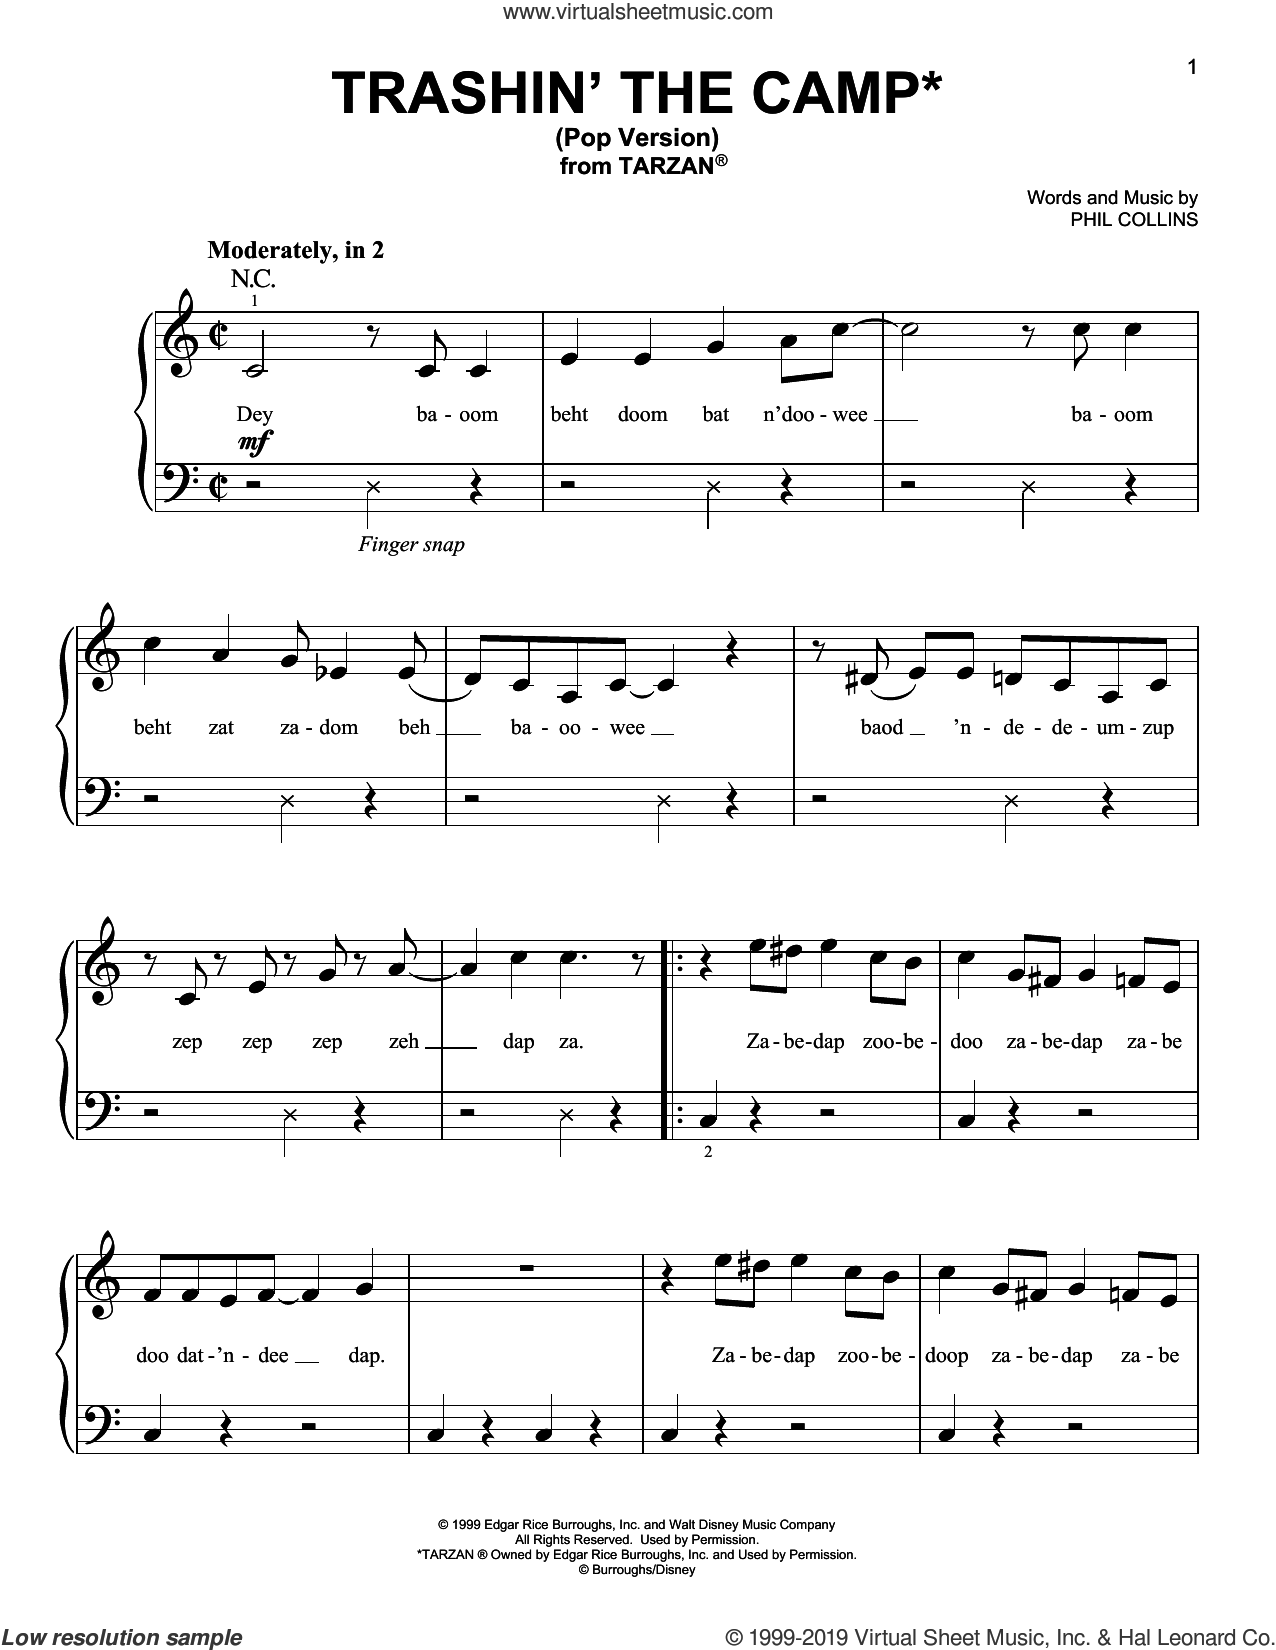 Trashin' The Camp (from Tarzan) (Pop Version) sheet music for piano solo by Phil Collins, beginner skill level